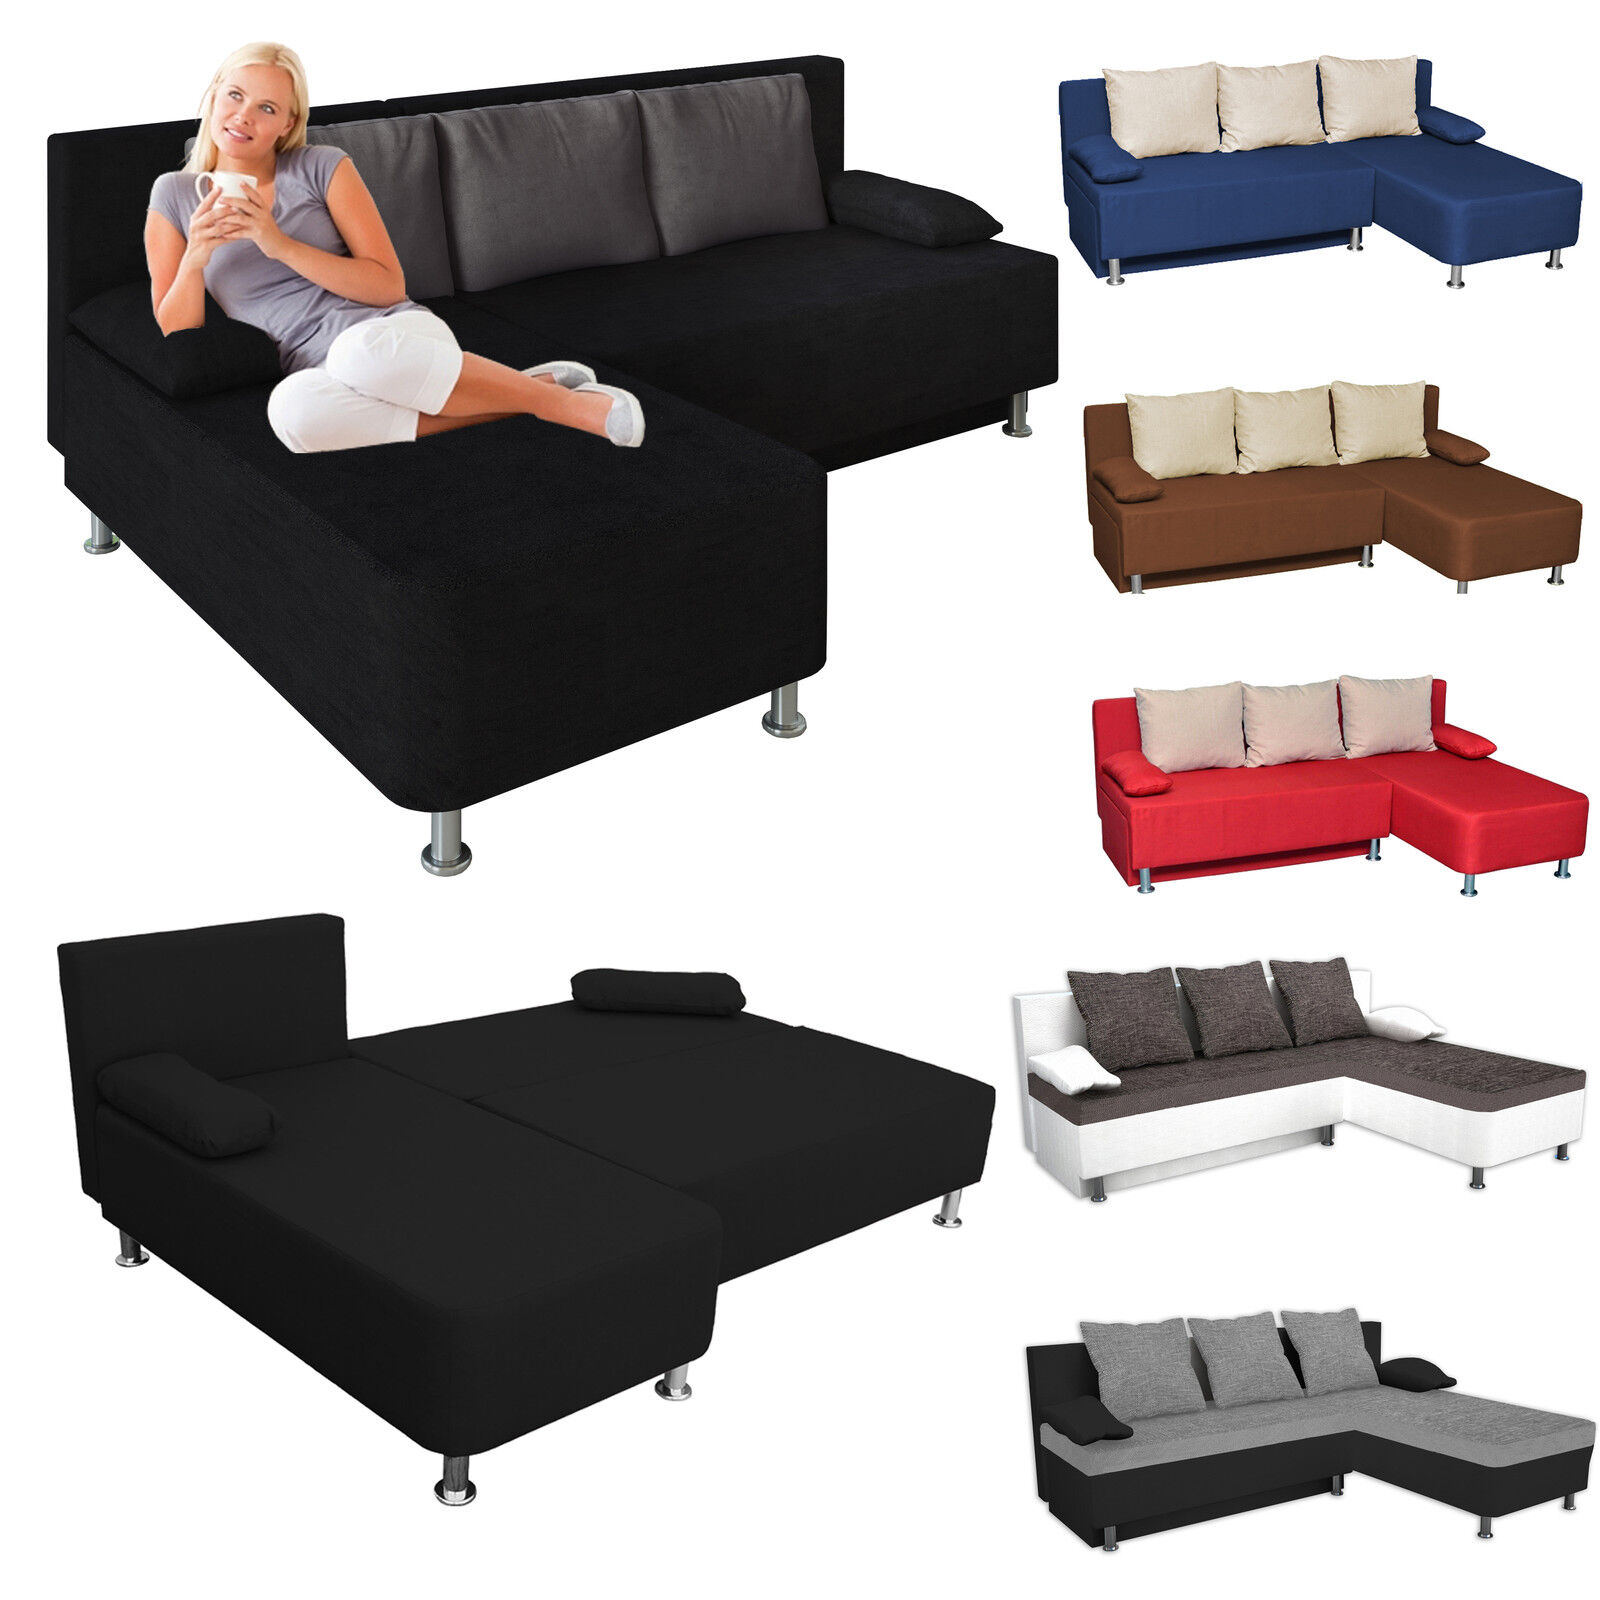 vcm ecksofa schlafsofa sofabett sofa couch mit schlaffunktion farbwahl ebay. Black Bedroom Furniture Sets. Home Design Ideas